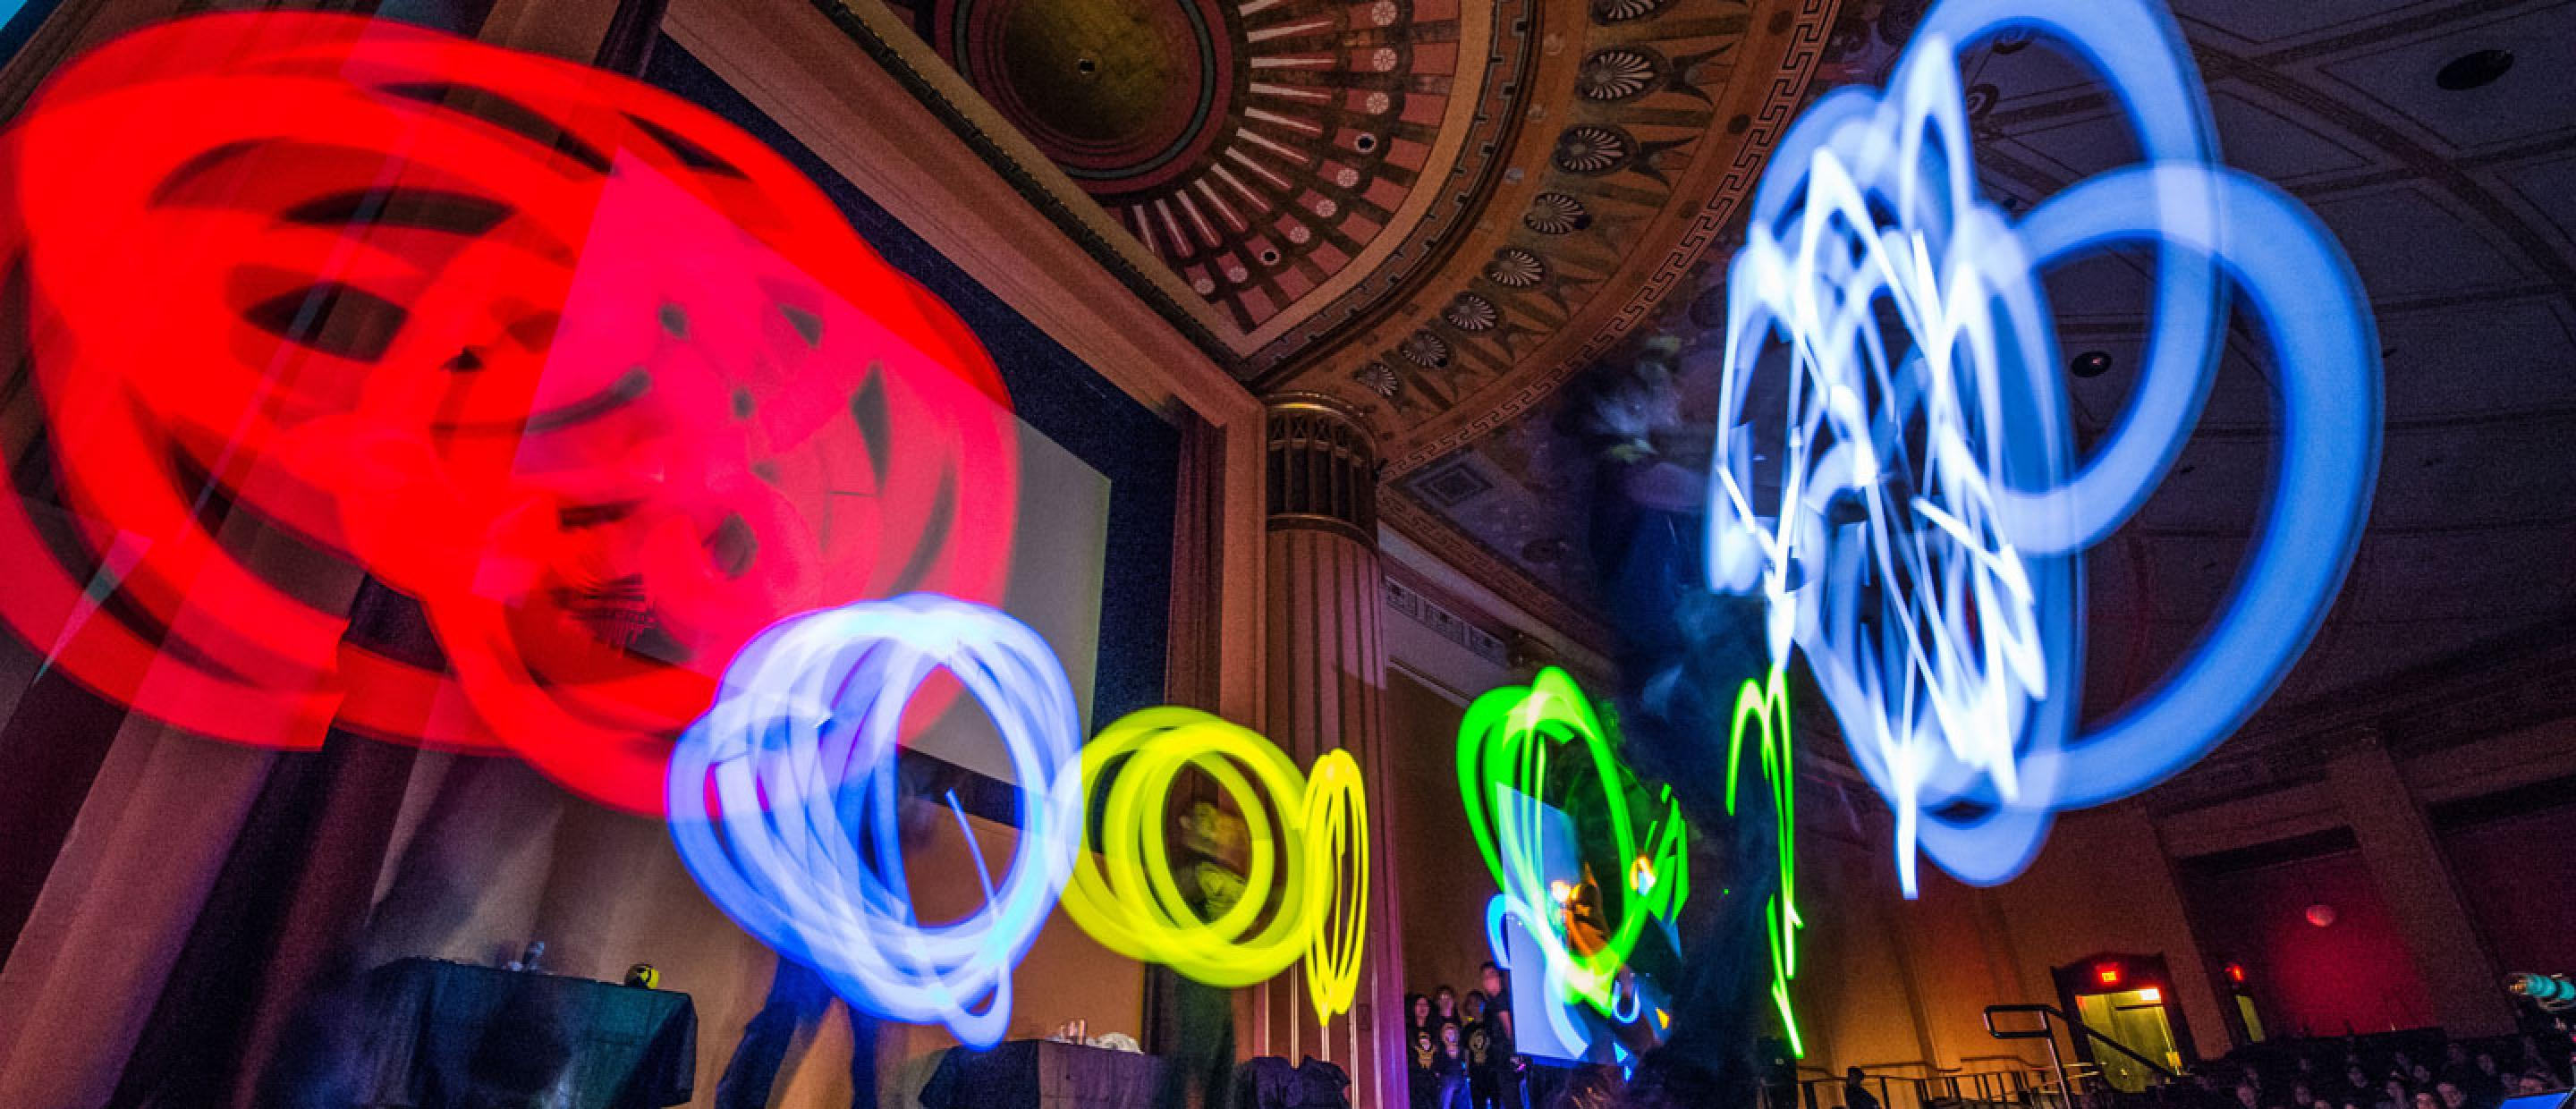 Performers spin brightly colored lights on stage at Rackham Auditorium